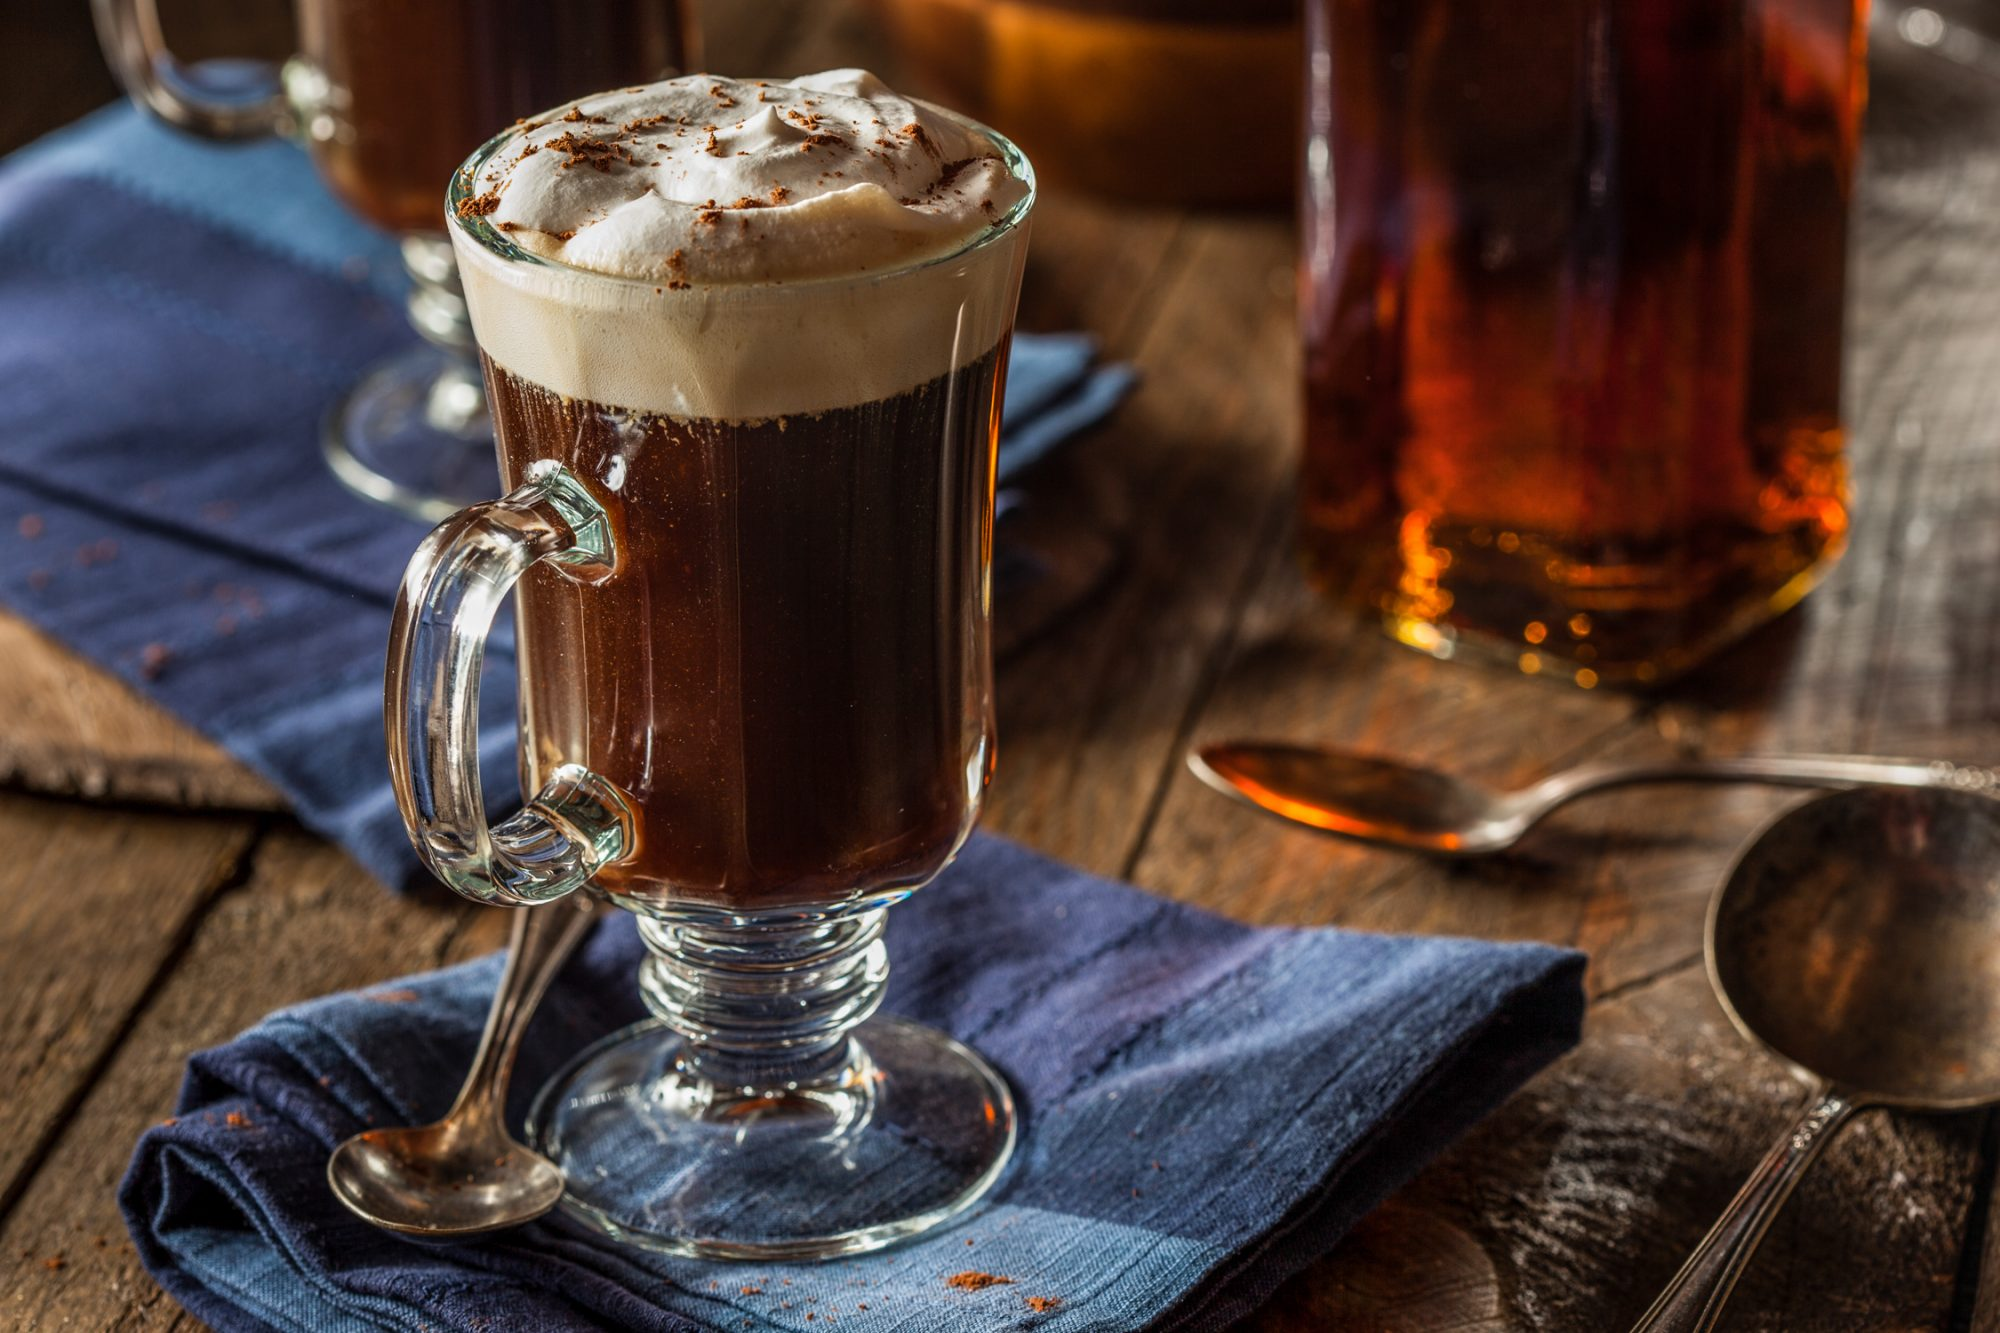 How To Make An Actually Good Irish coffee